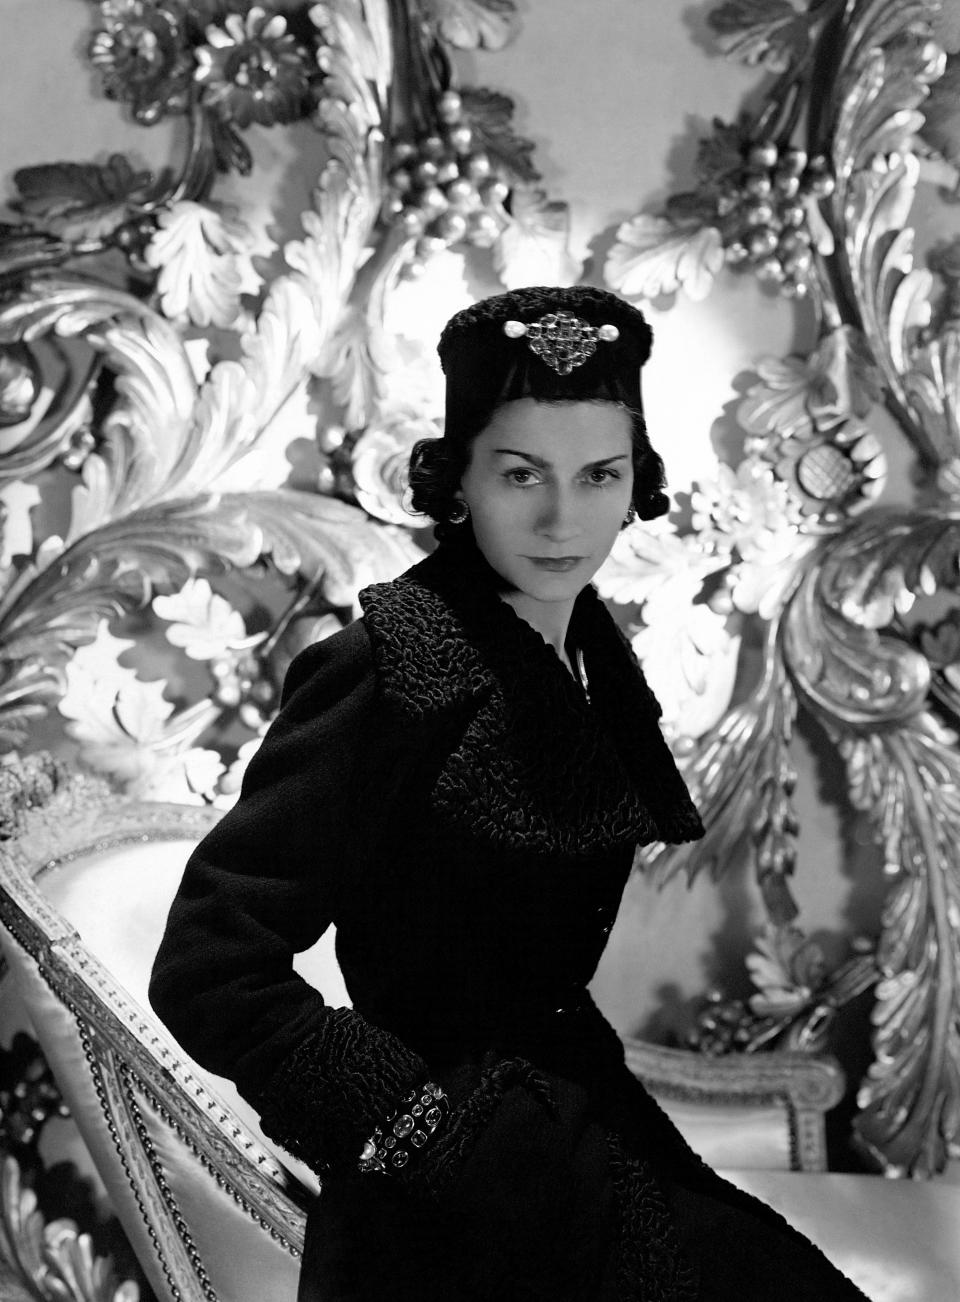 Coco Chanel en 1937. (Photo by Horst P. Horst/Condé Nast via Getty Images)